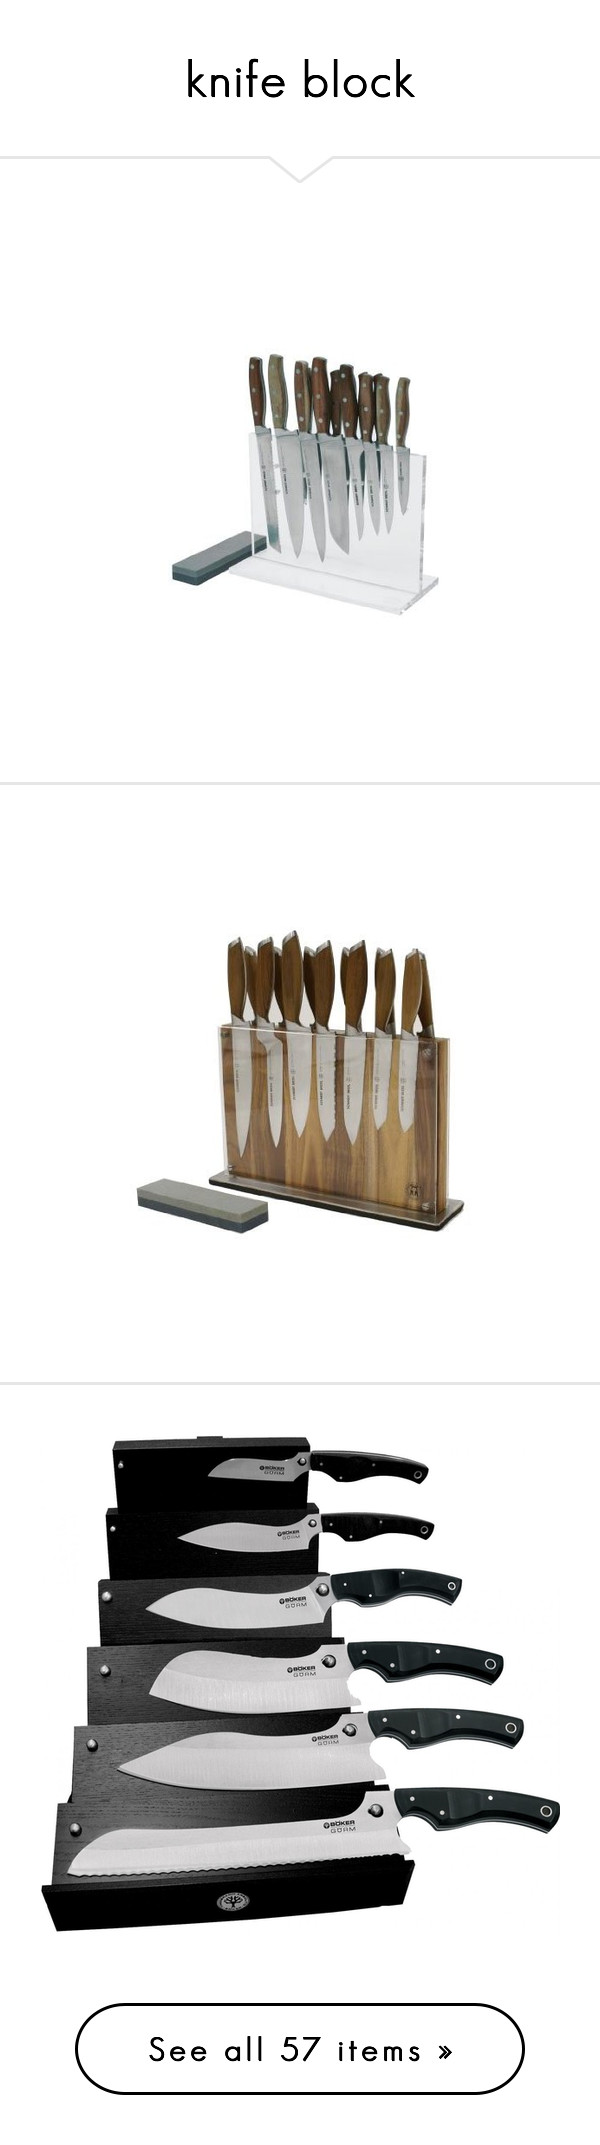 """knife block"" by aries-ariessw-sw on Polyvore featuring home, kitchen & dining, cutlery, tomato slicer, full tang knives, bread slicer, paring knife set, utility knives, tomato knives and chef cutlery"